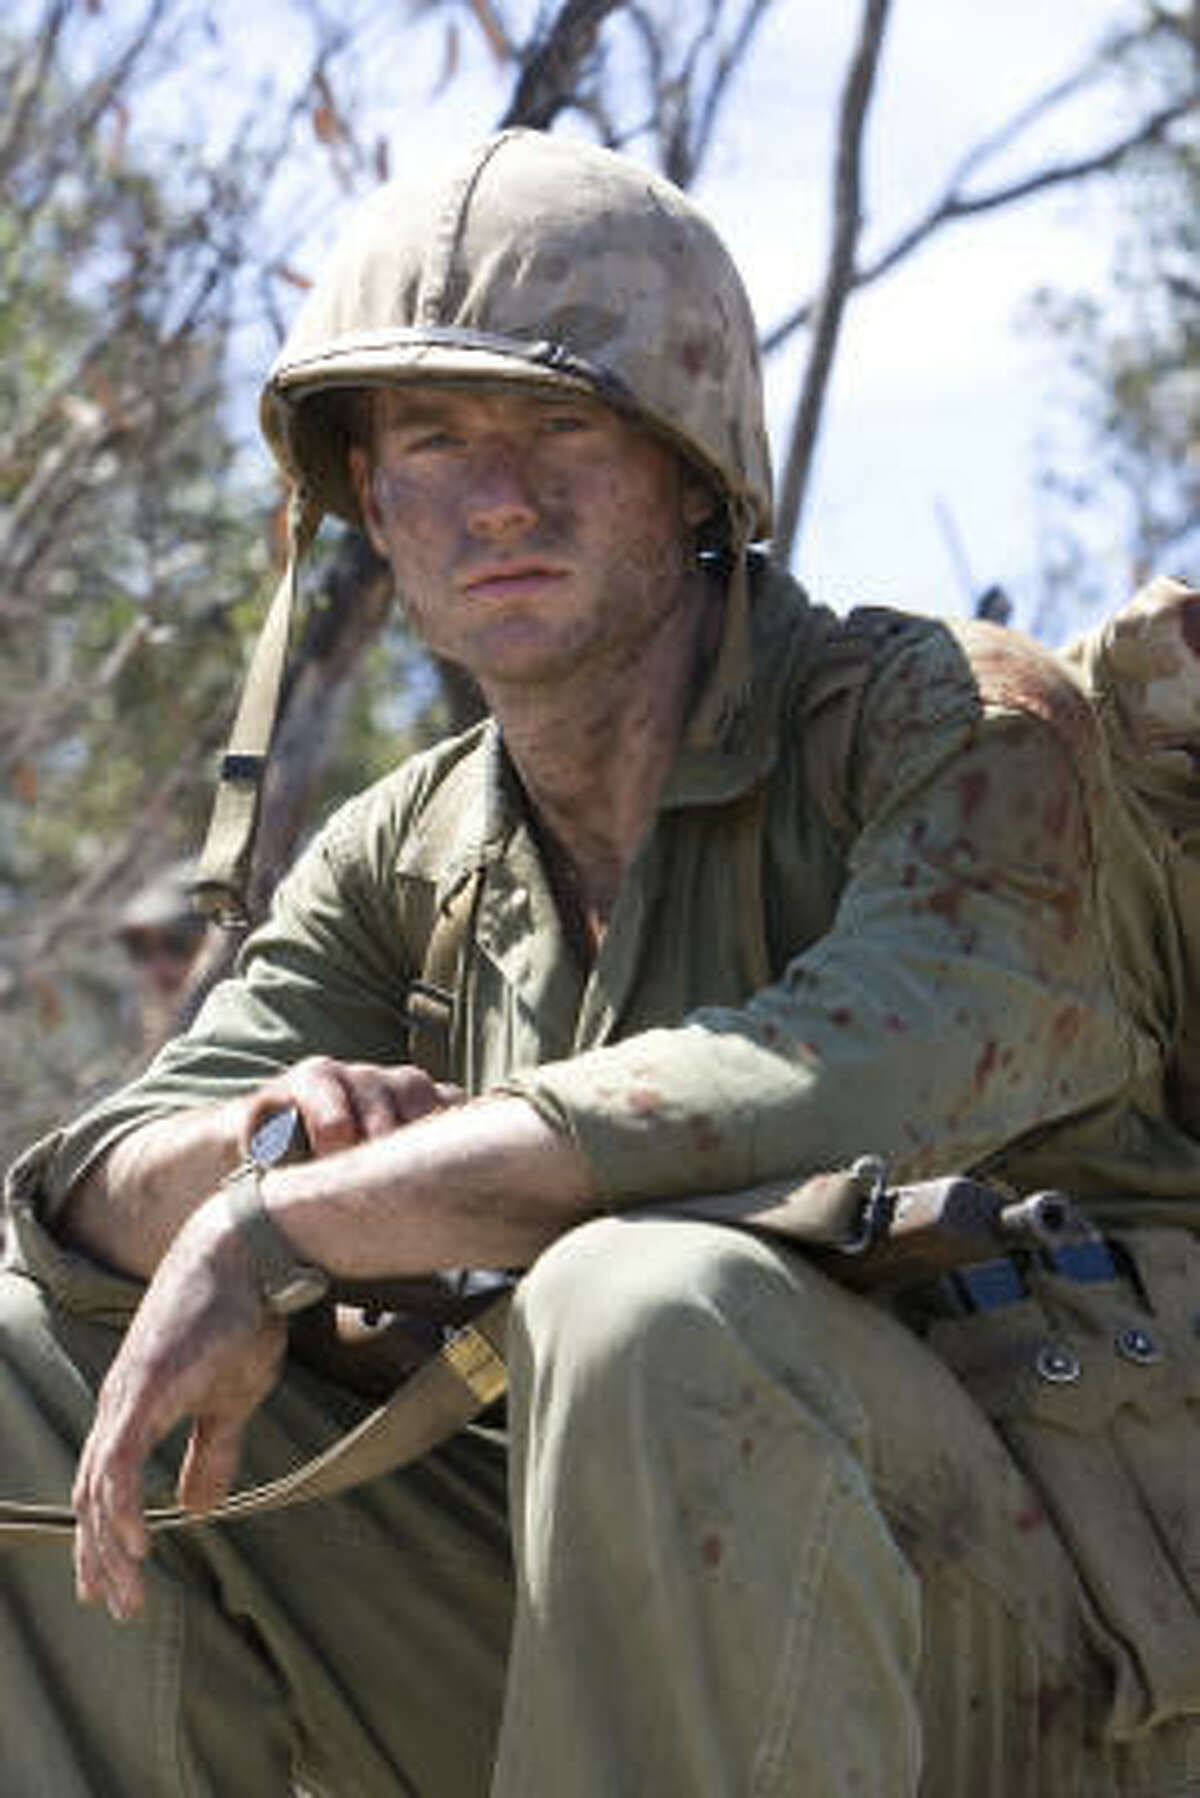 James Badge Dale stars as a young soldier.